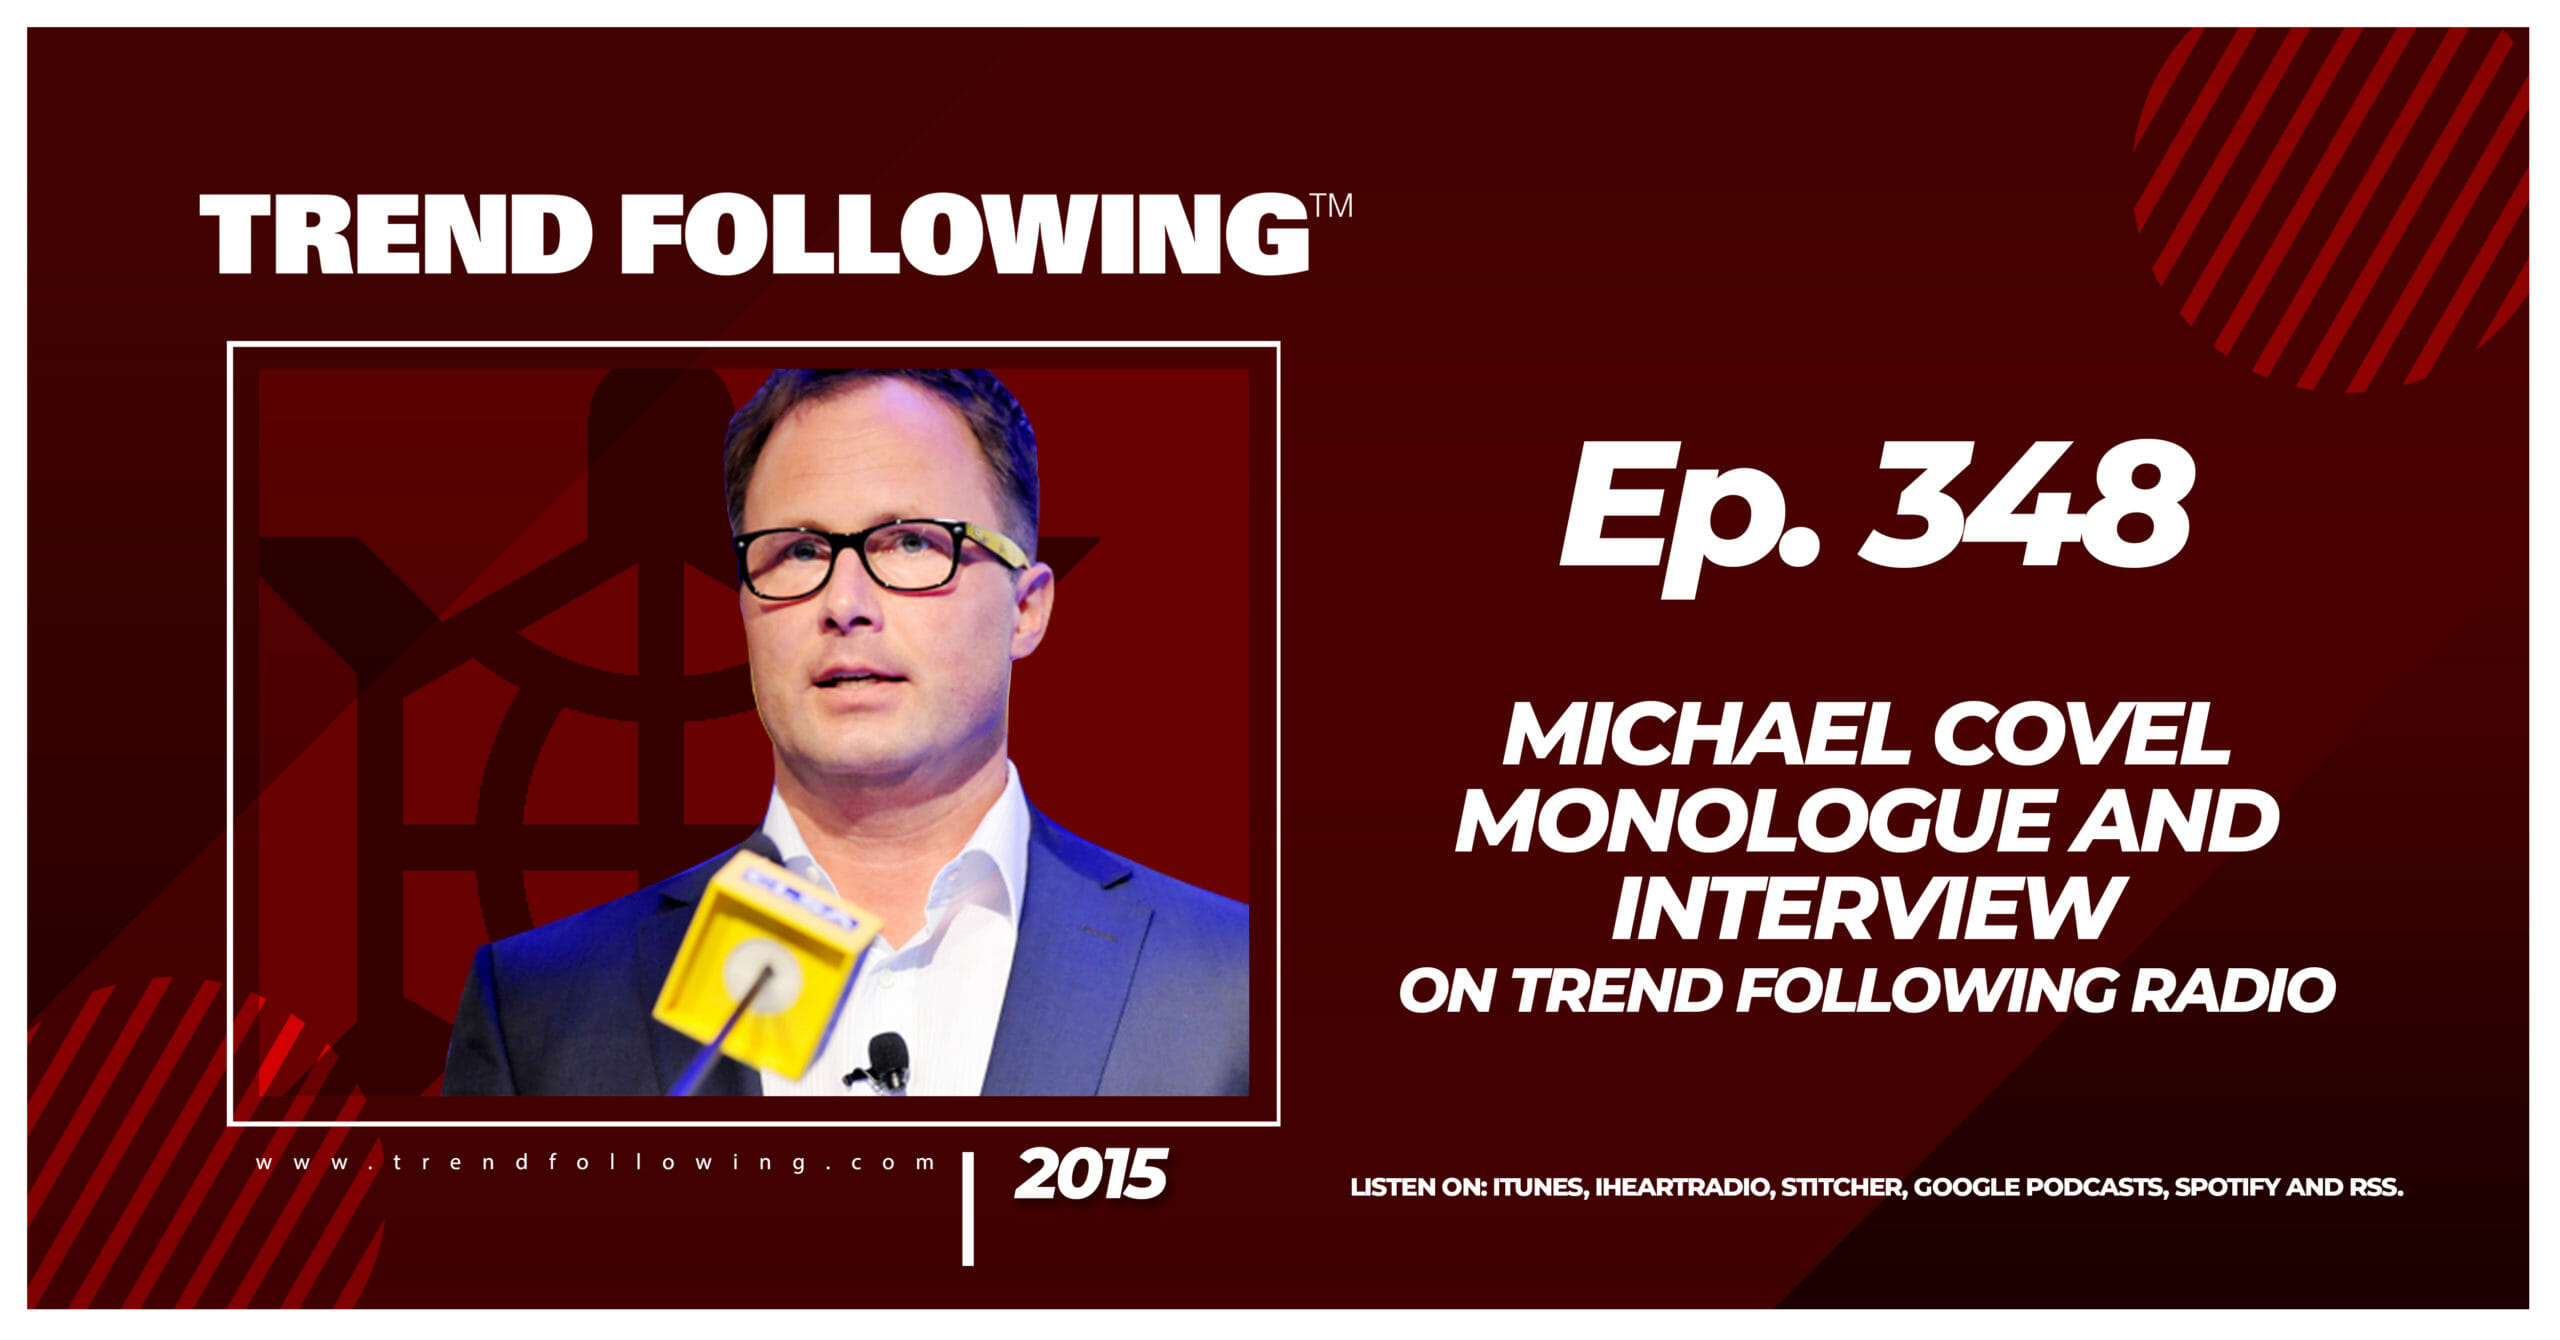 Michael Covel Monologue and Interview on Trend Following Radio